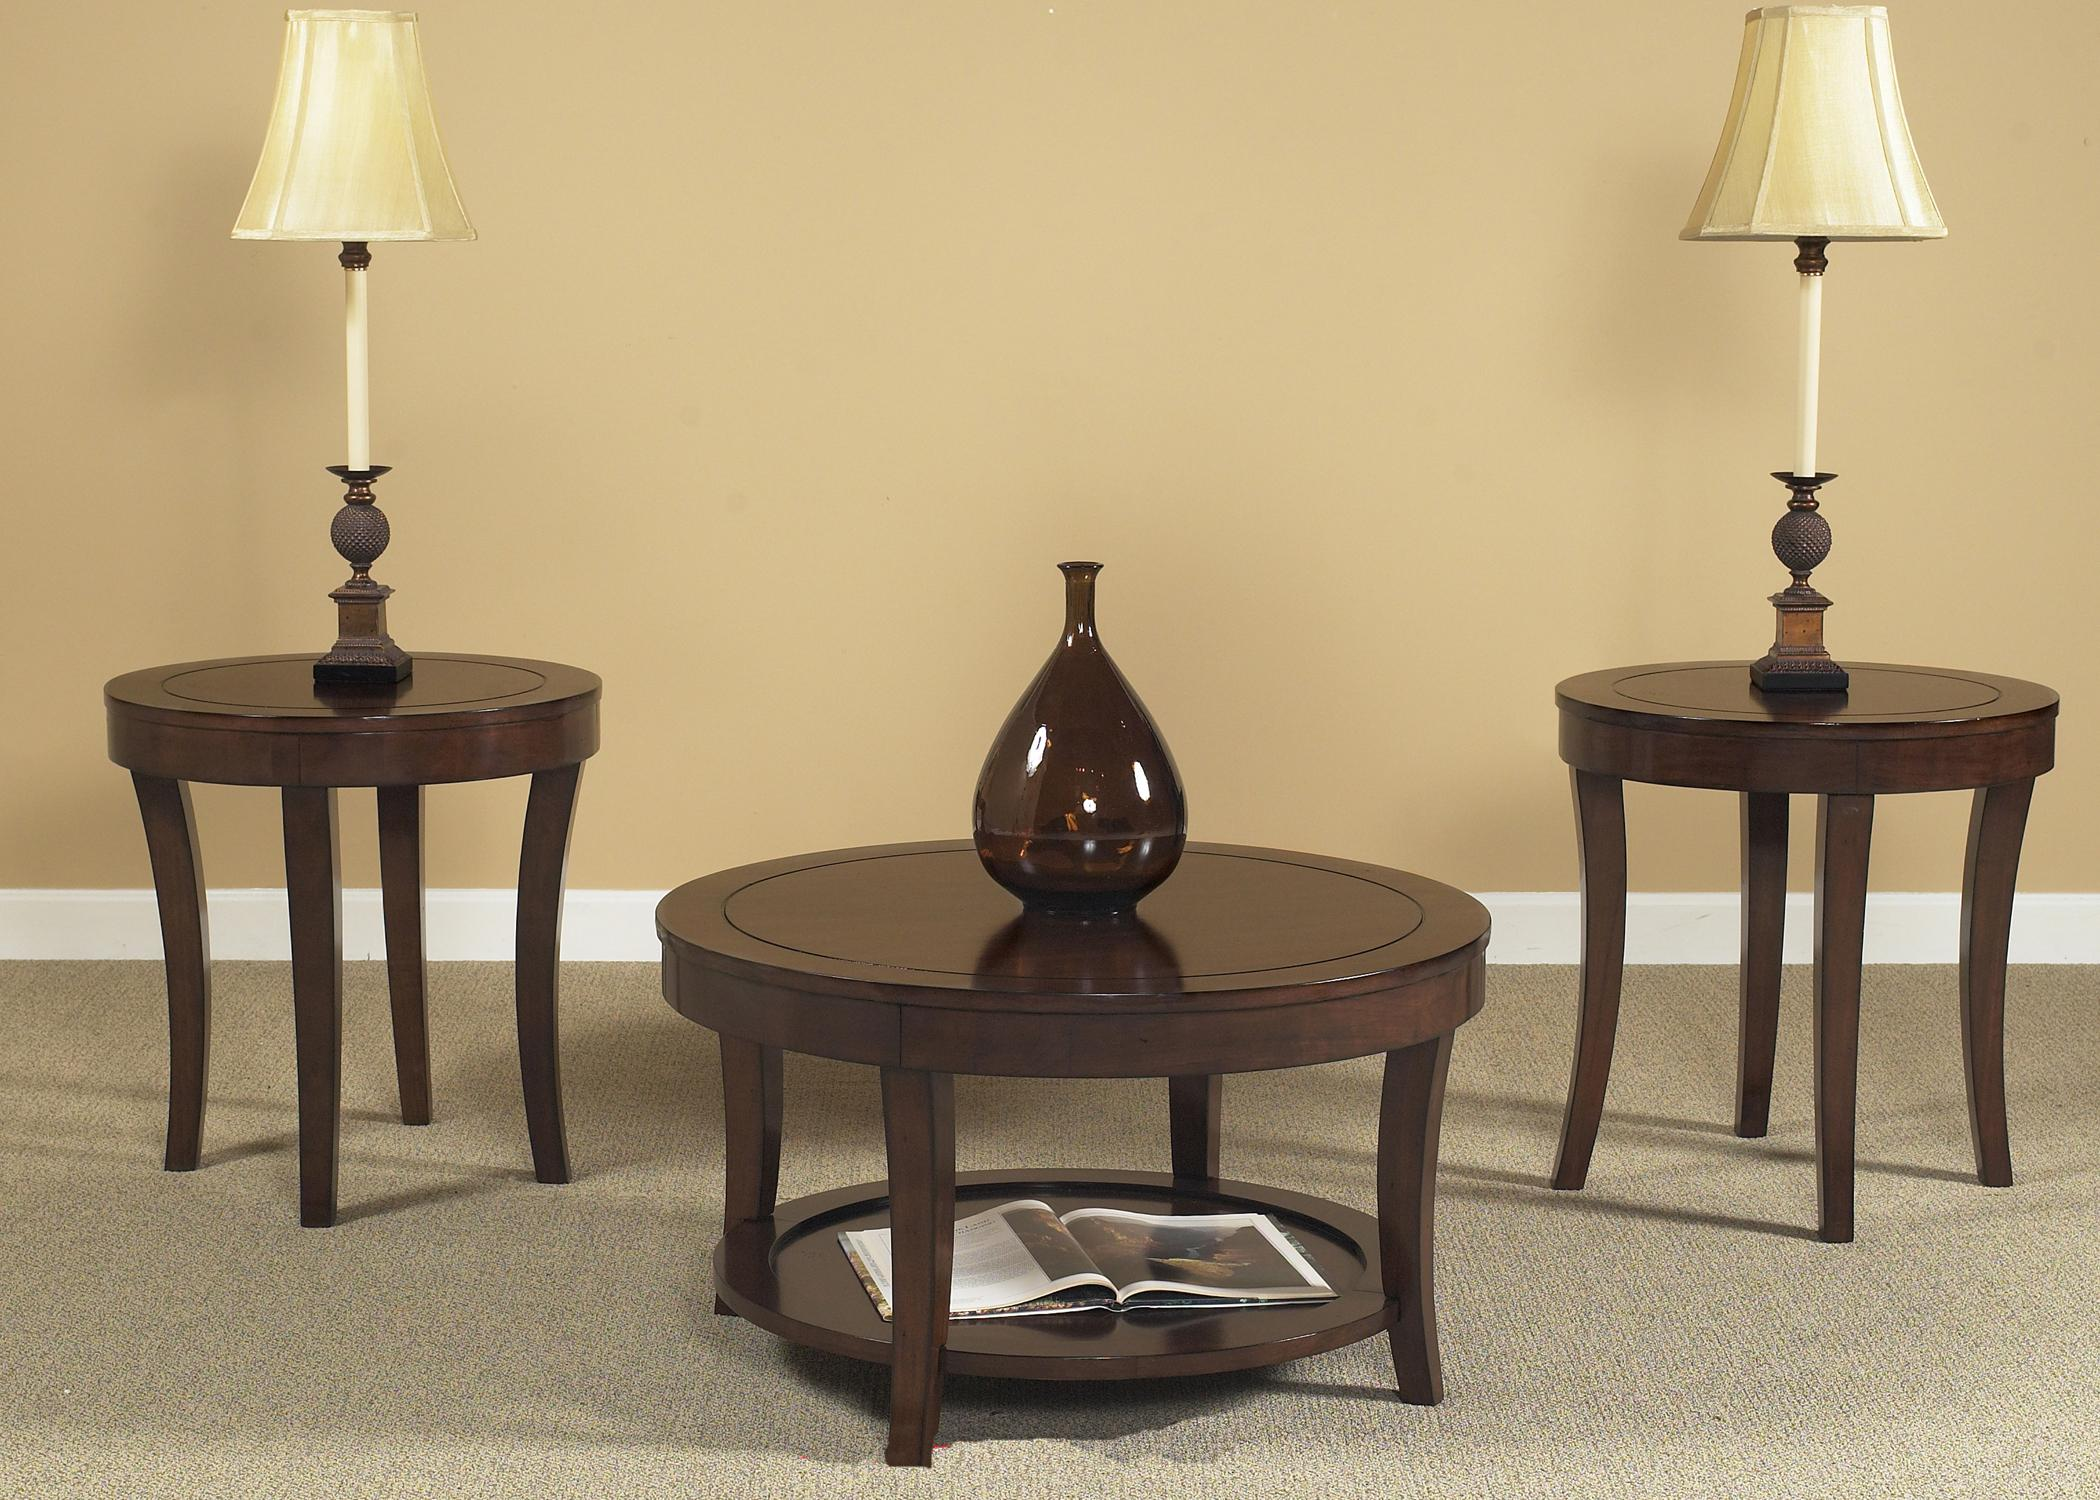 Liberty Furniture Casual Living 168 3 Pack Occasional Tables - Item Number: 168-OT3000